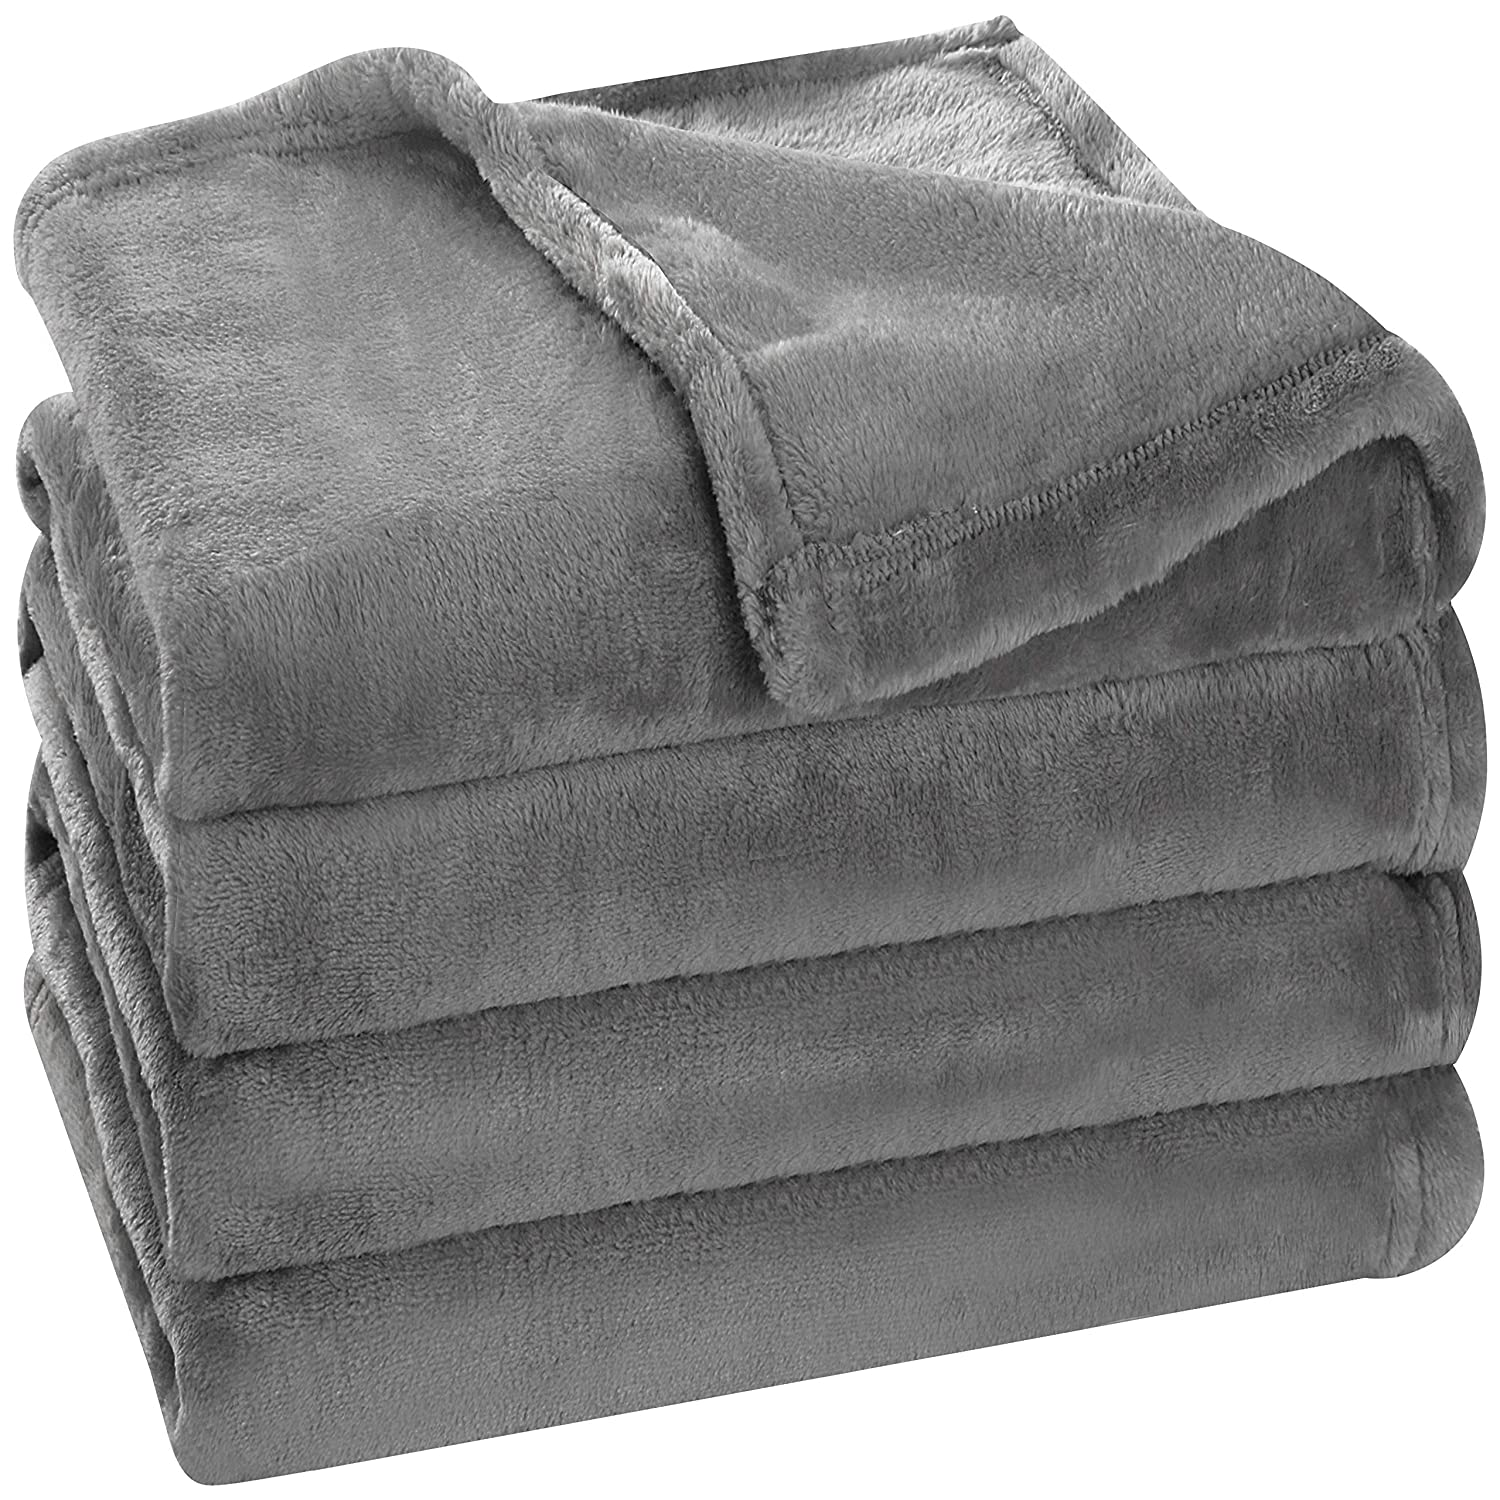 Utopia Bedding Fleece Blanket Twin Size Grey Luxury Bed Blanket Fuzzy Soft Blanket Microfiber